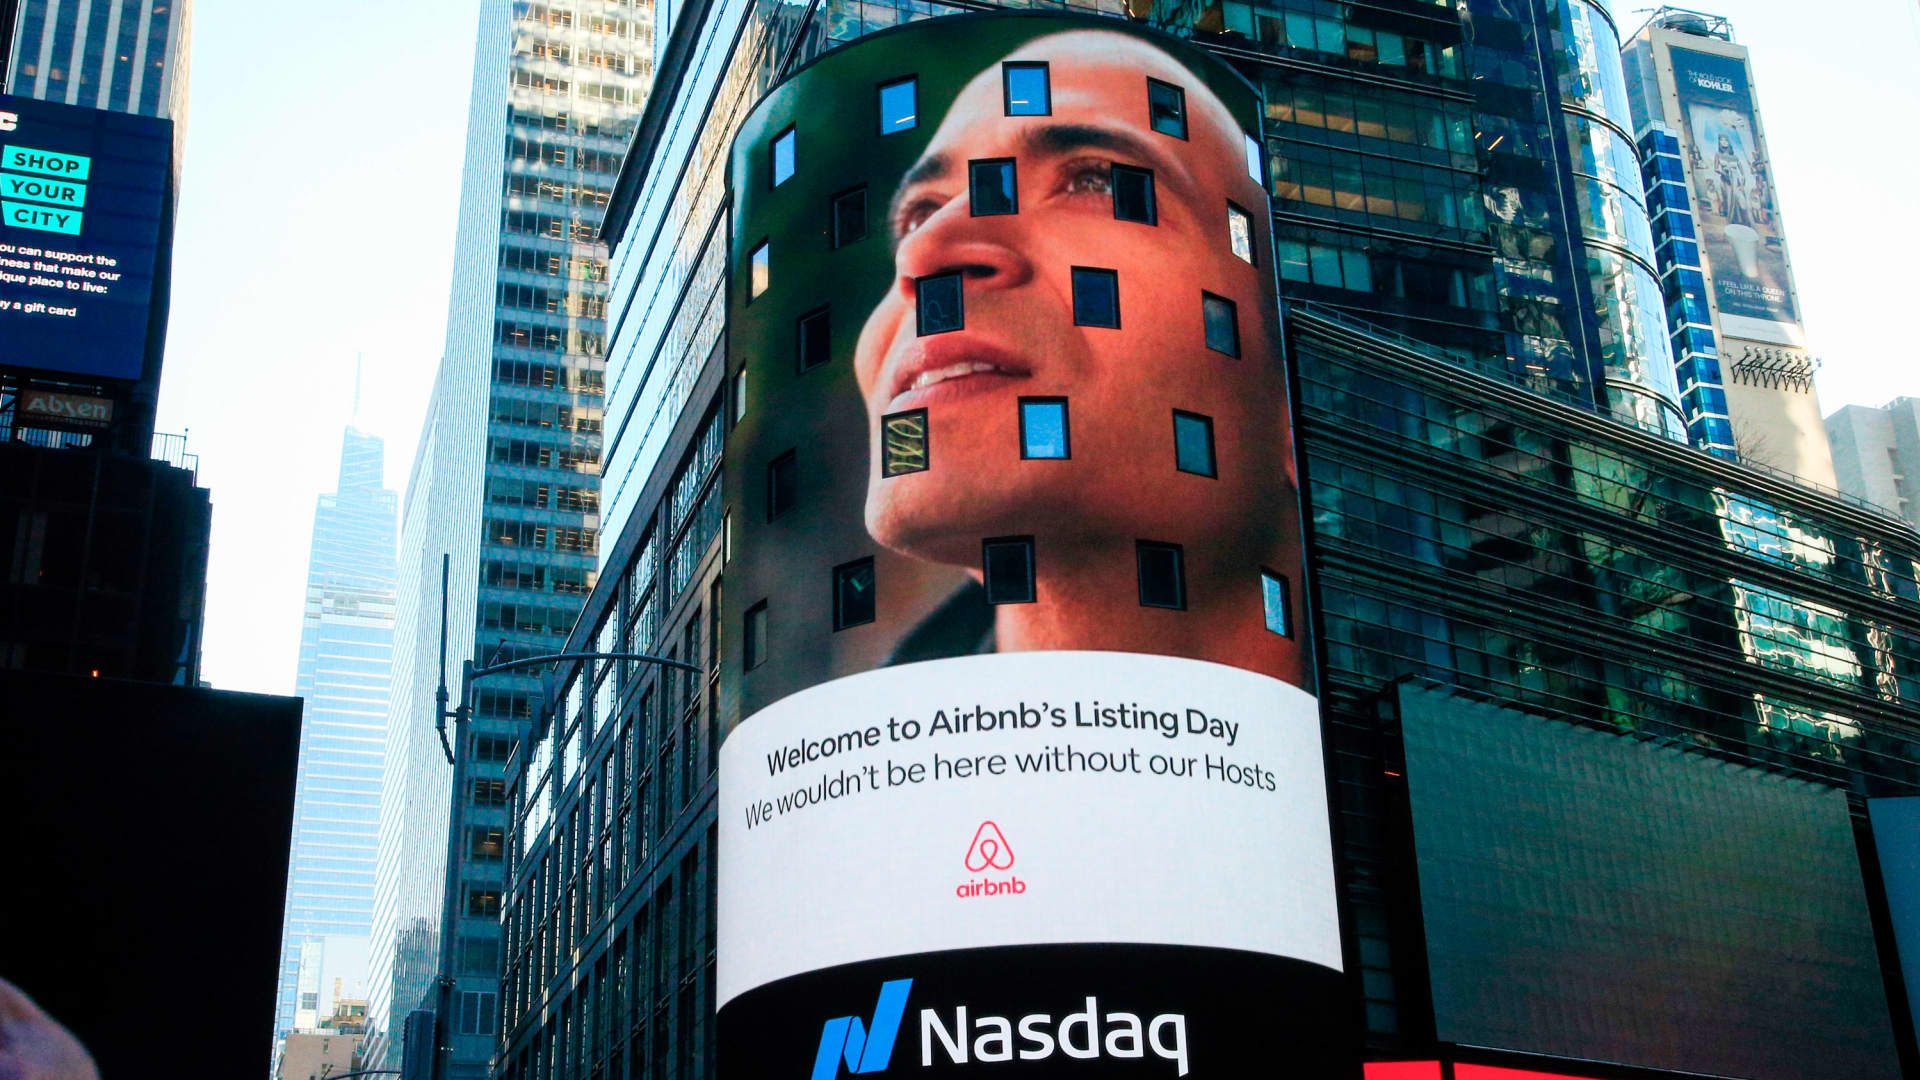 The Airbnb logo is displayed on the Nasdaq digital billboard in Times Square in New York on December 10, 2020.